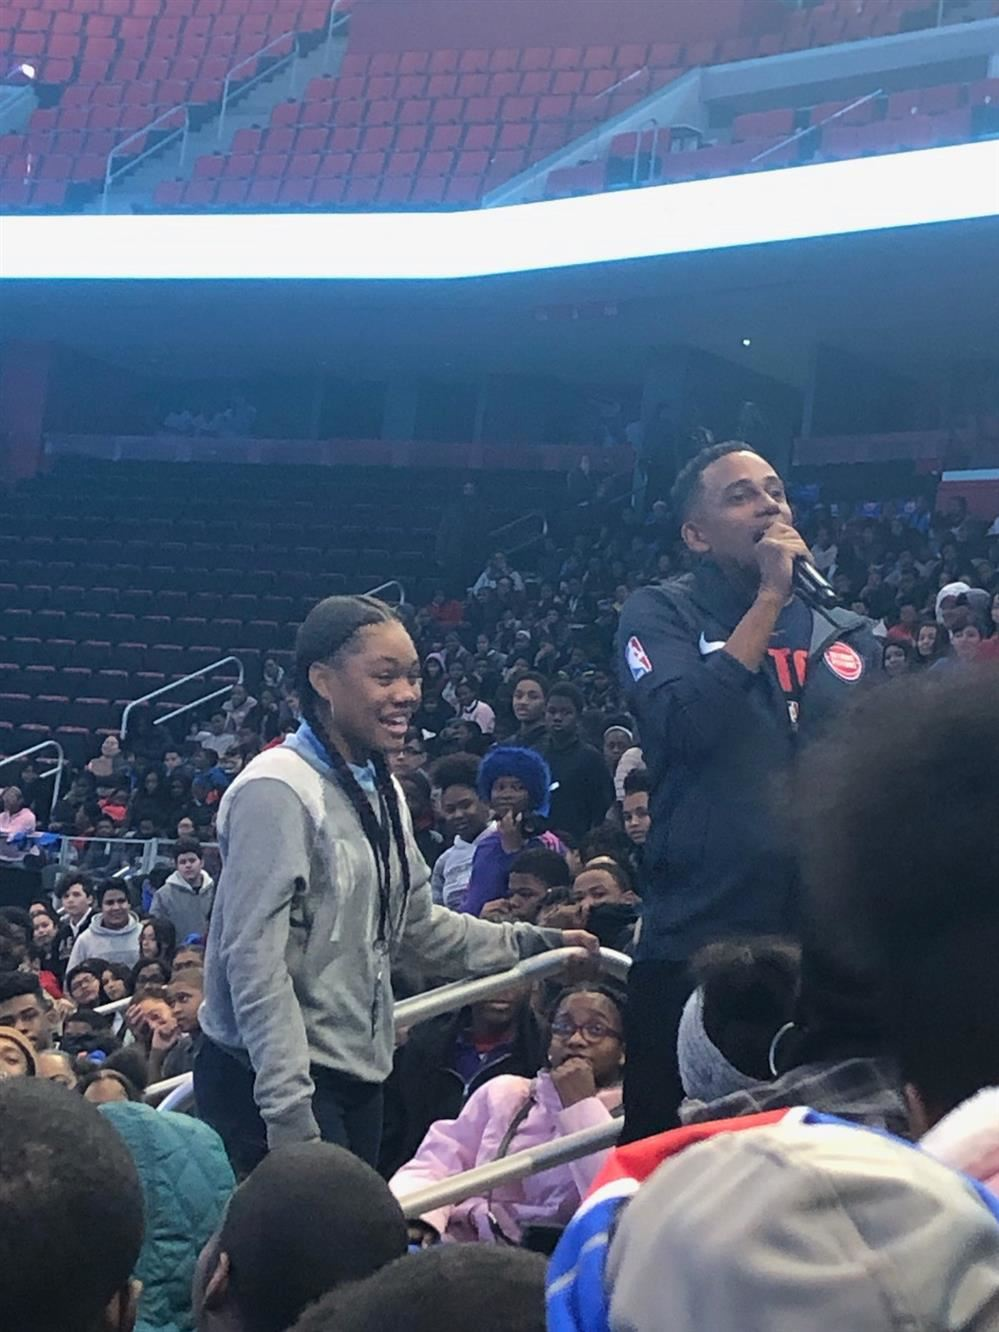 8th grade girl is standing with the announcer in Little Caesars Arena